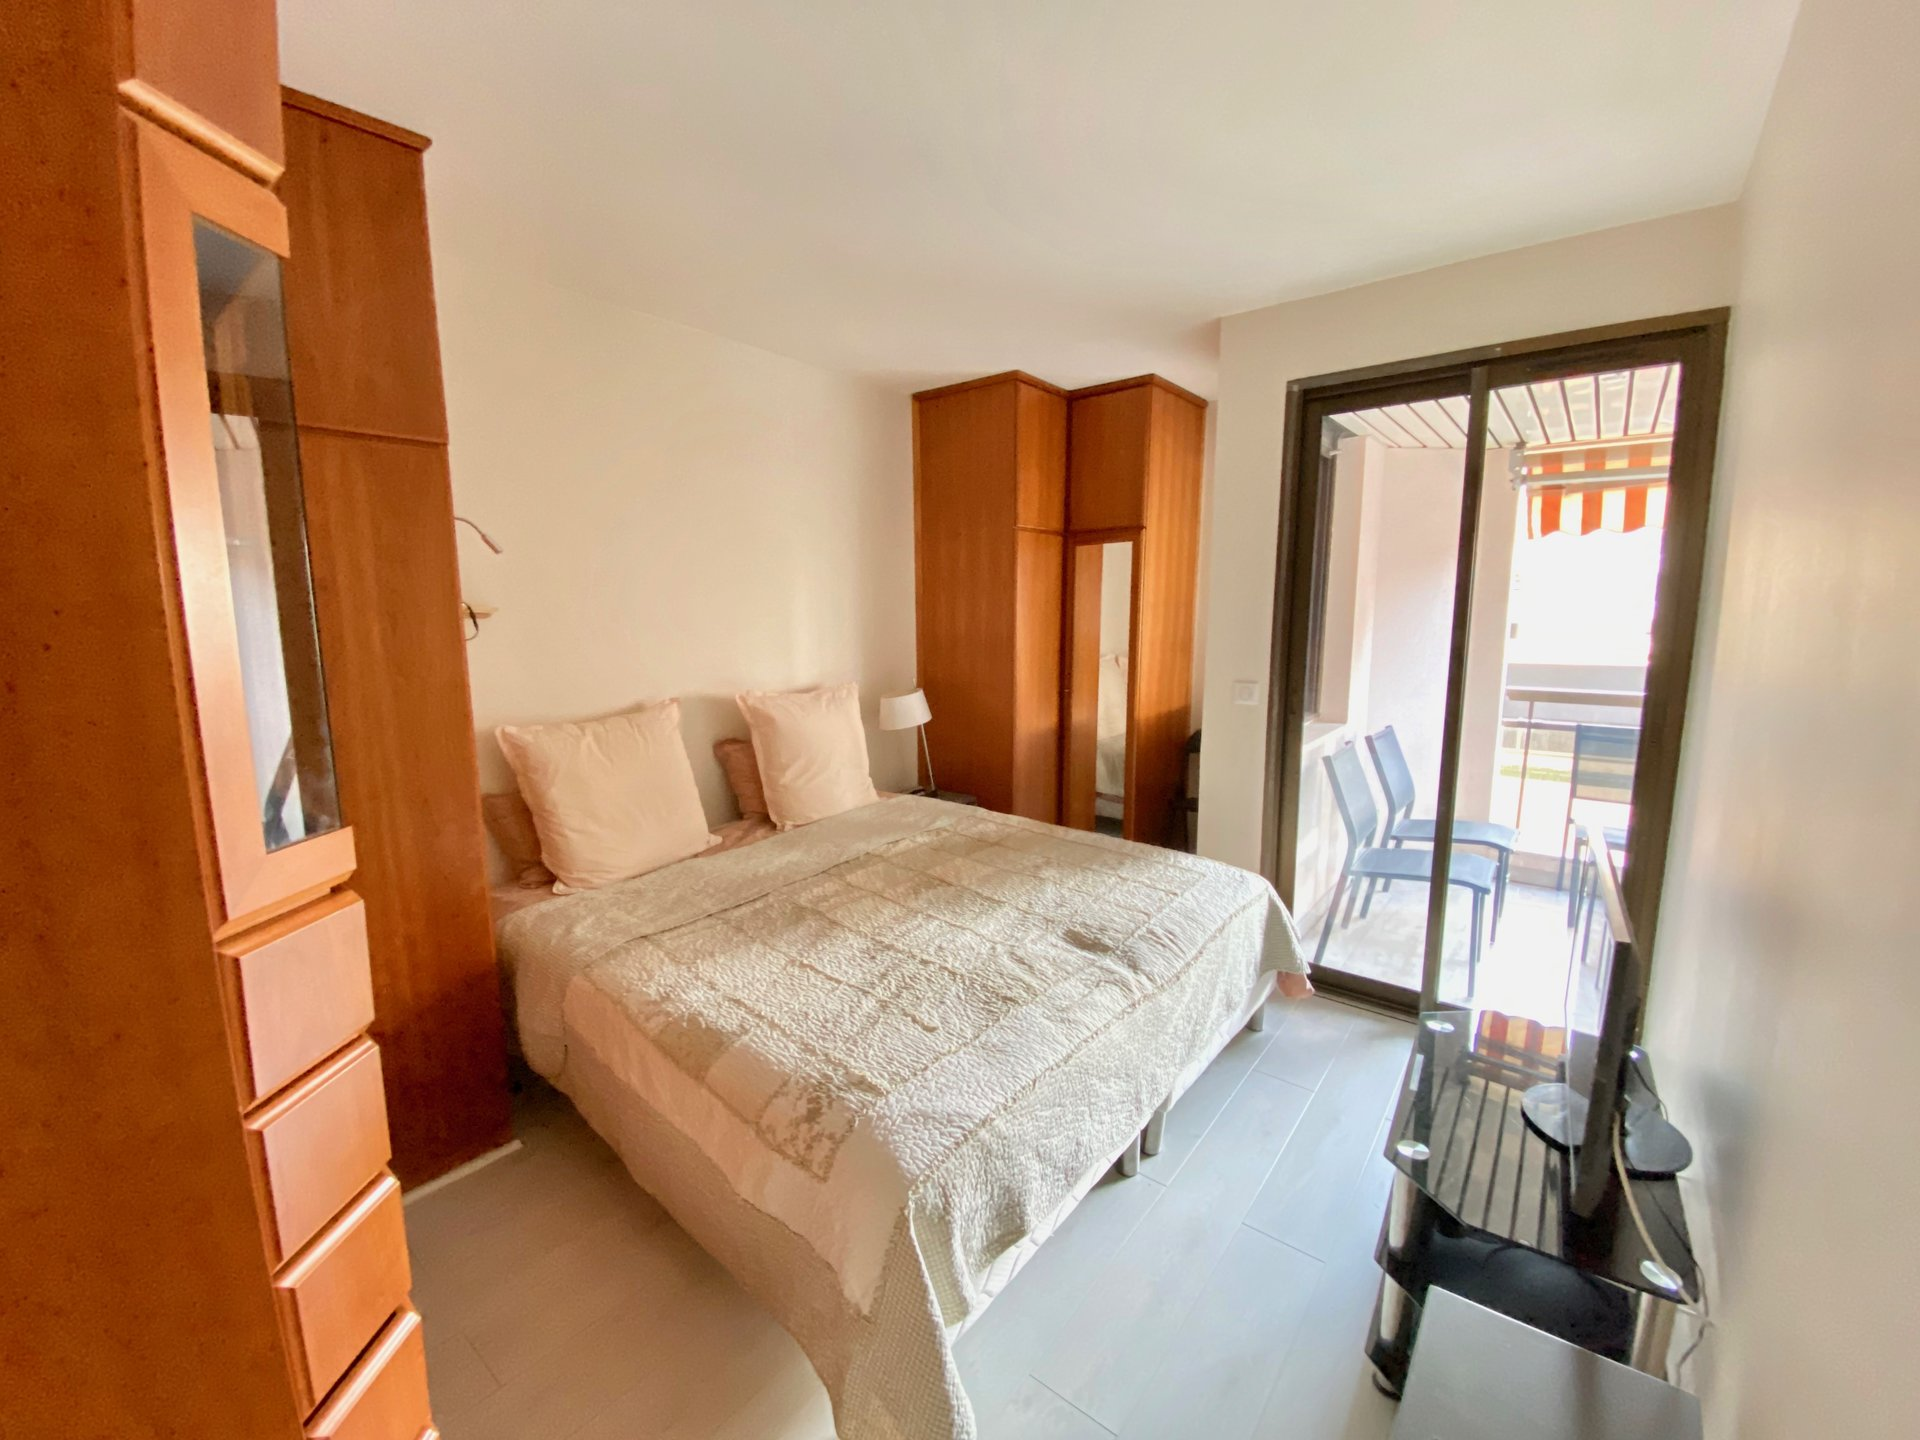 2 bedrooms and sea view